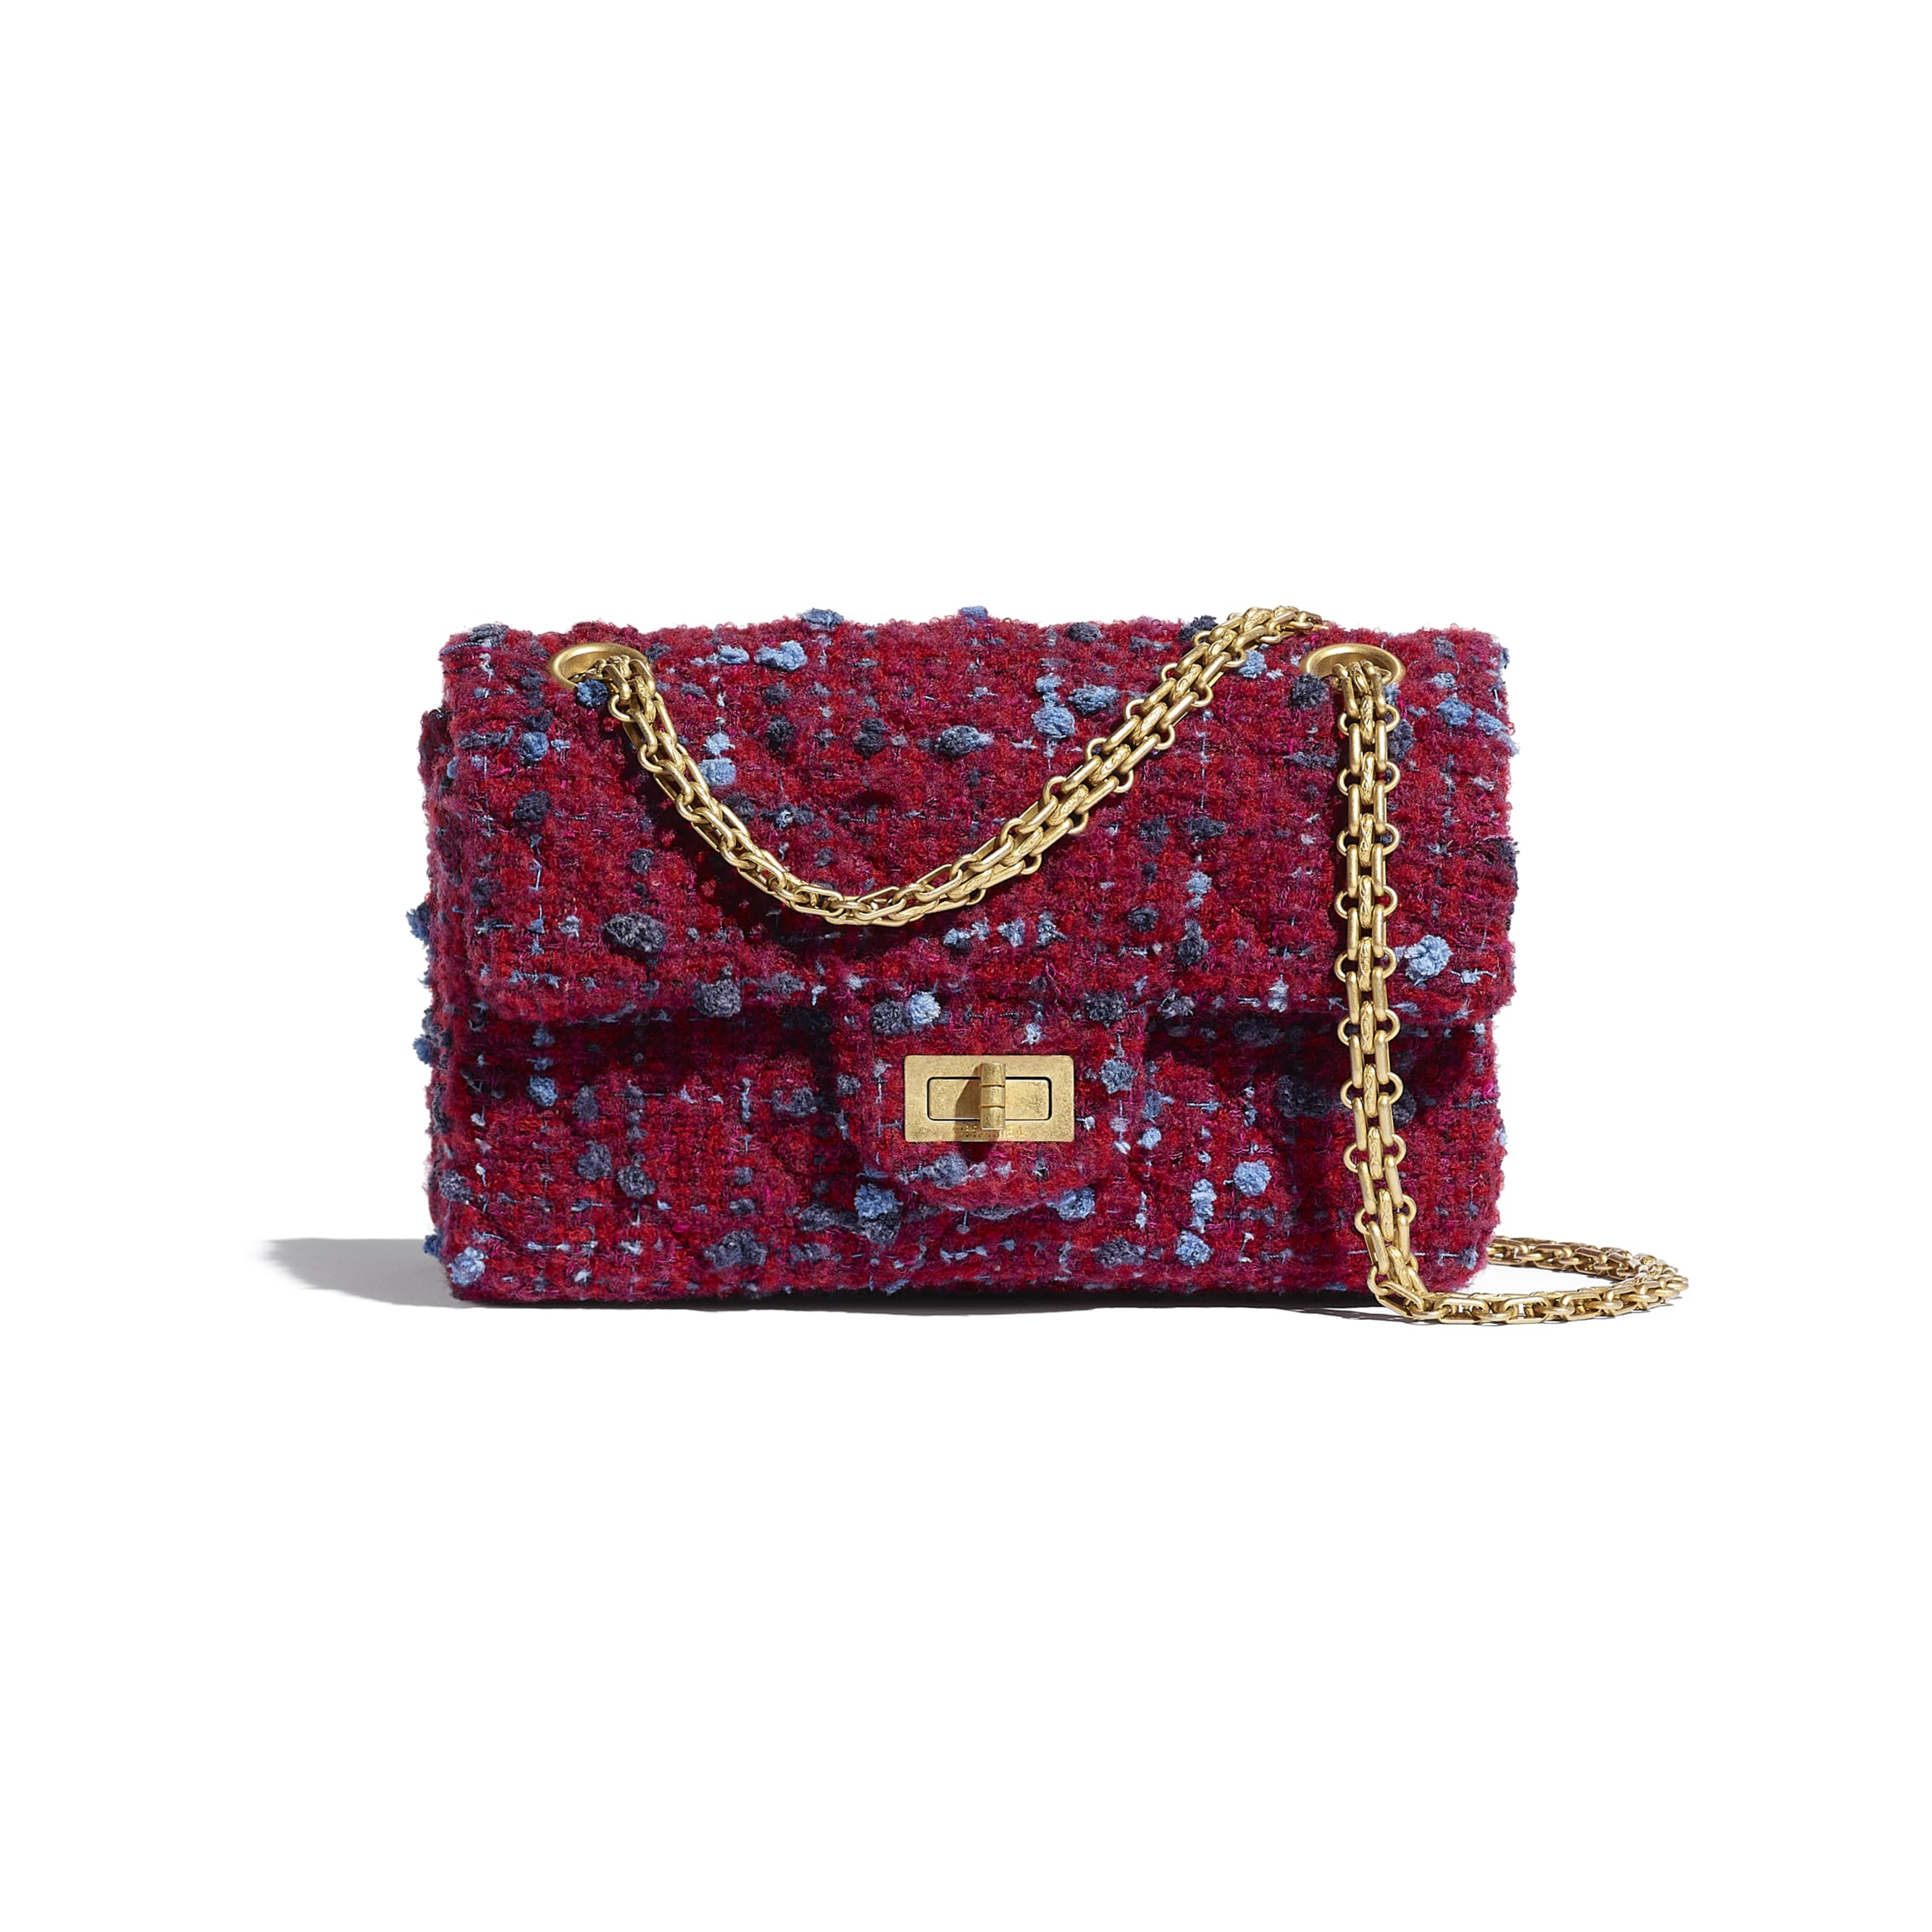 Small 2.55 Handbag - Burgundy, Blue & Grey - Tweed & Gold Metal - CHANEL - Default view - see standard sized version